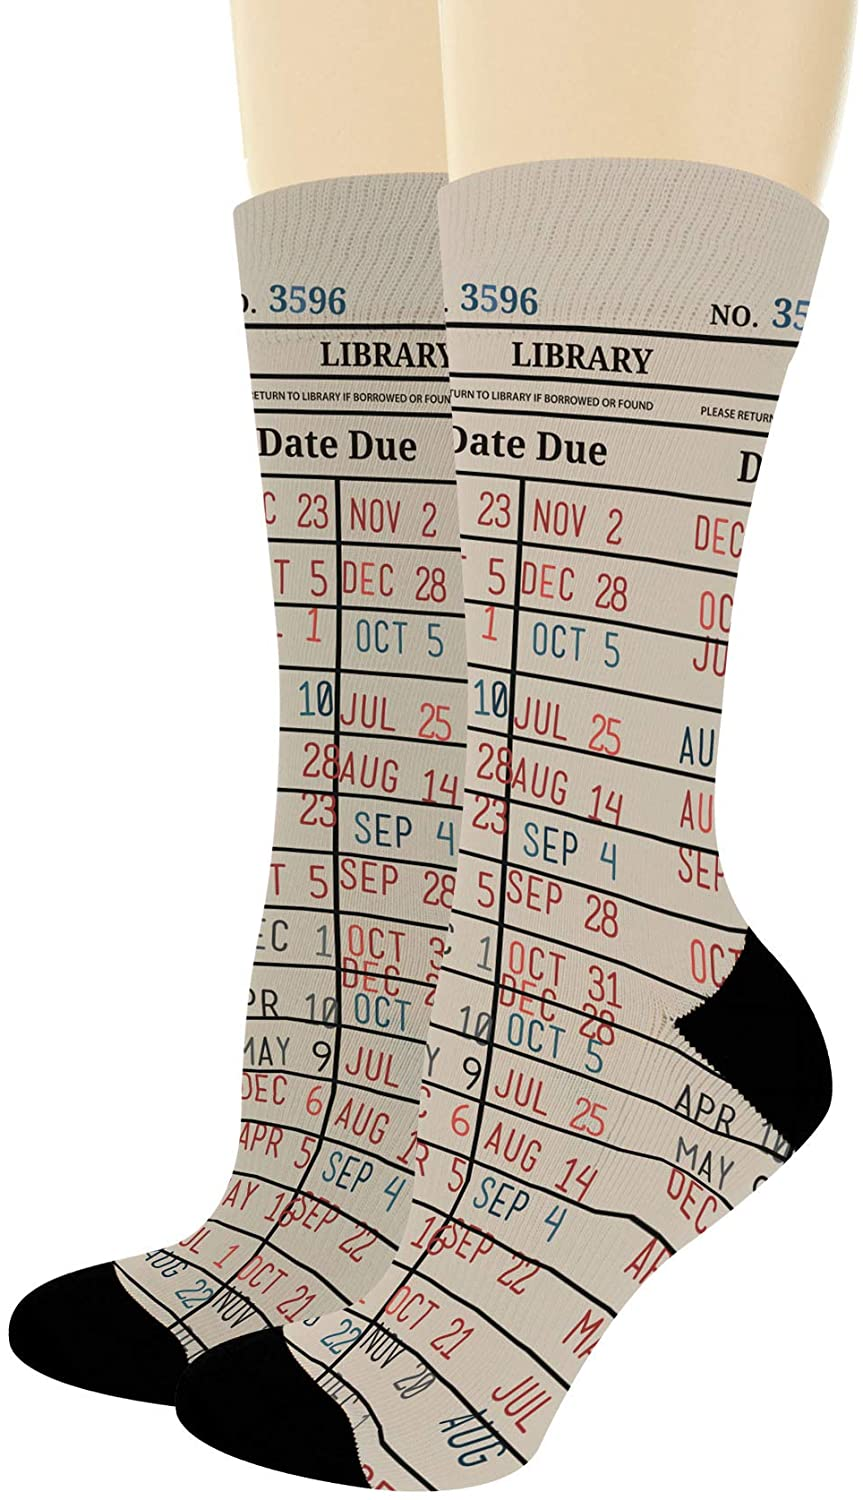 Bookworm Gifts Library Card Socks Book Socks Reading Gifts for Librarians Nerdy Novelty Crew Socks